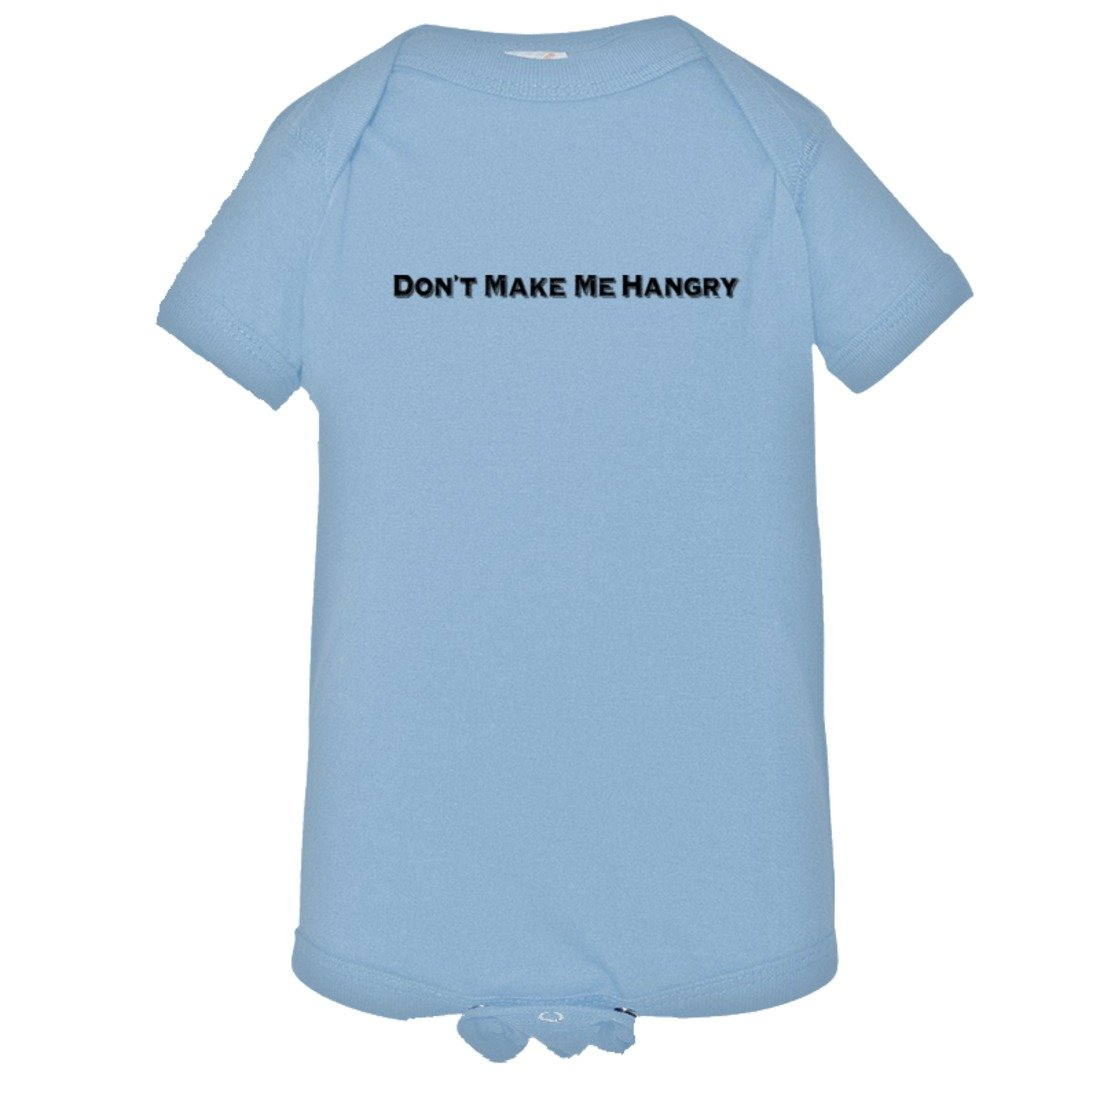 PleaseMeTees Baby Dont Make Me Hangry Funny Angry Hungry HQ Bodysuit 1-Piece